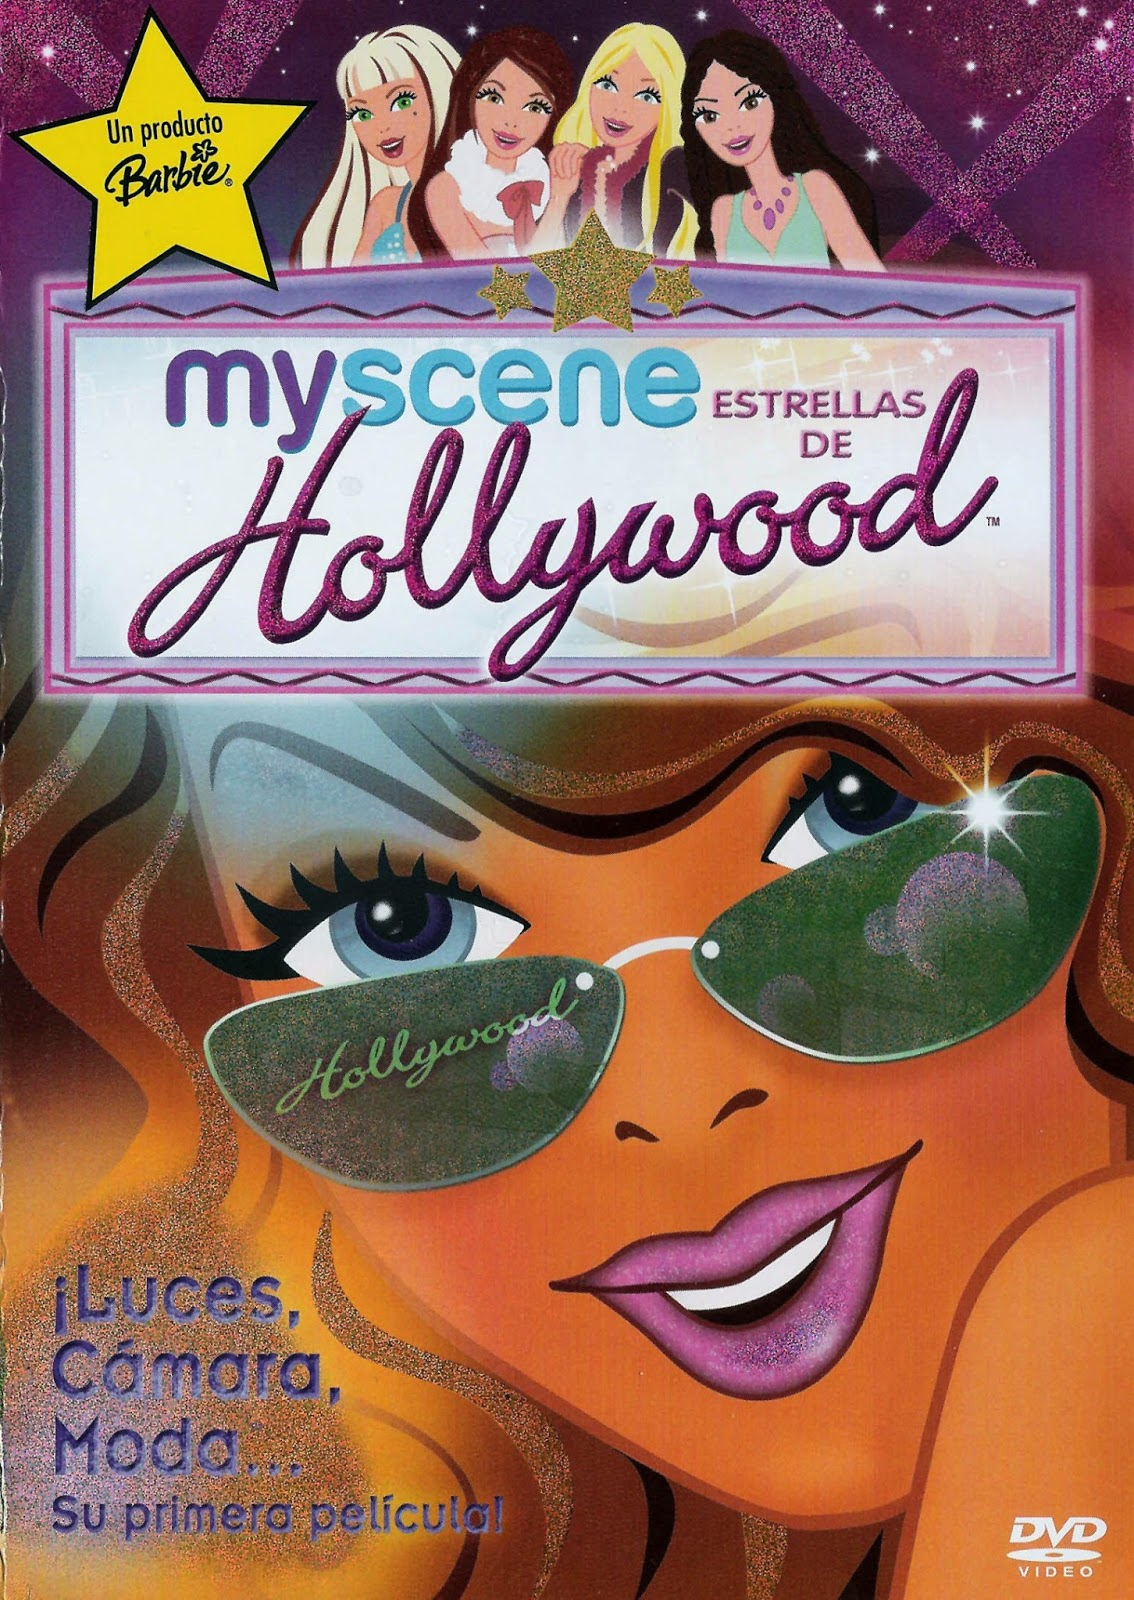 myscene estrellas hollywood: